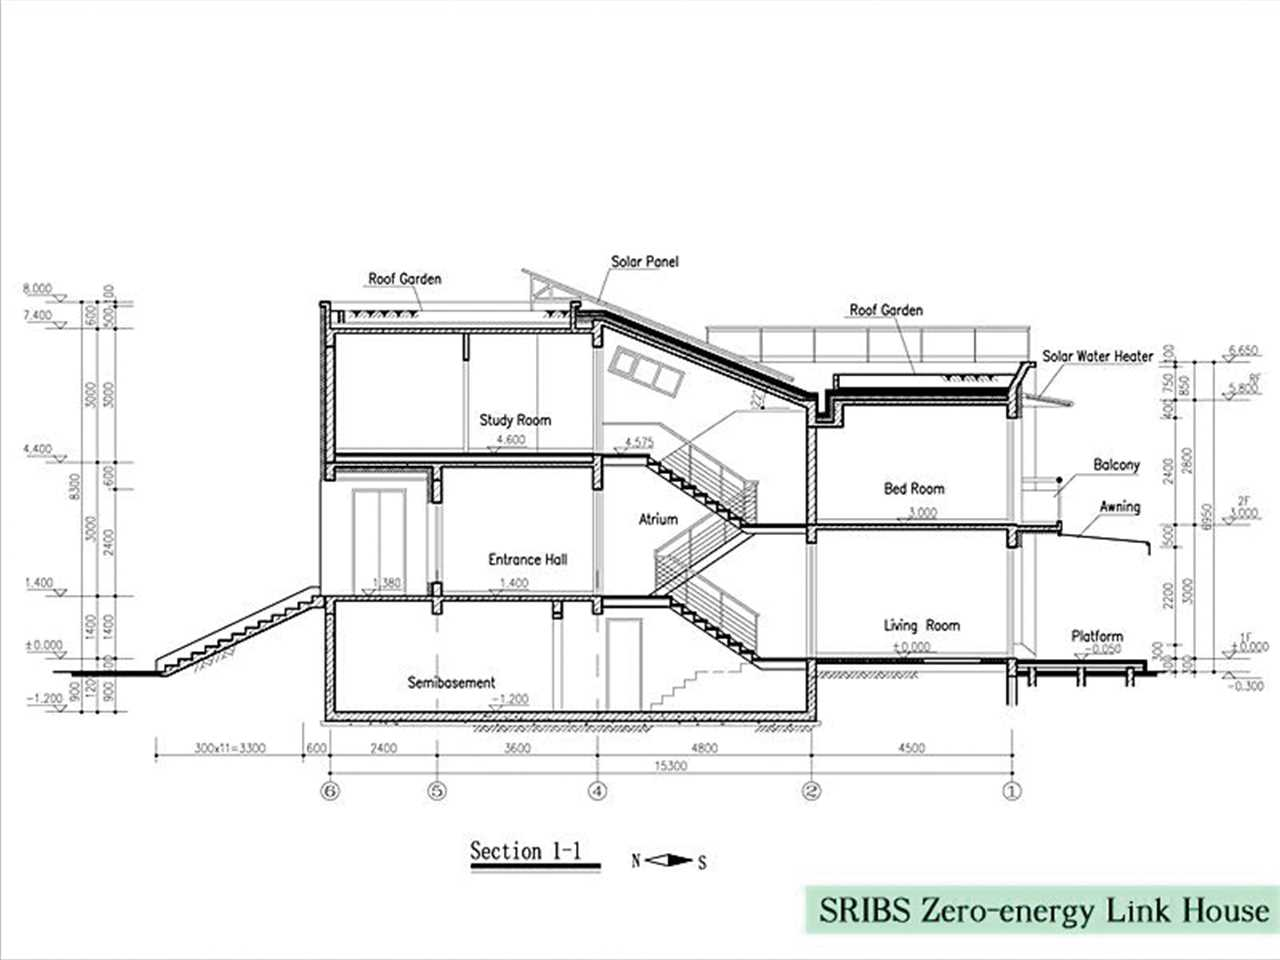 Project entry 2005 Asia Pacific – SRIBS Minimal energy link house, Shanghai, China